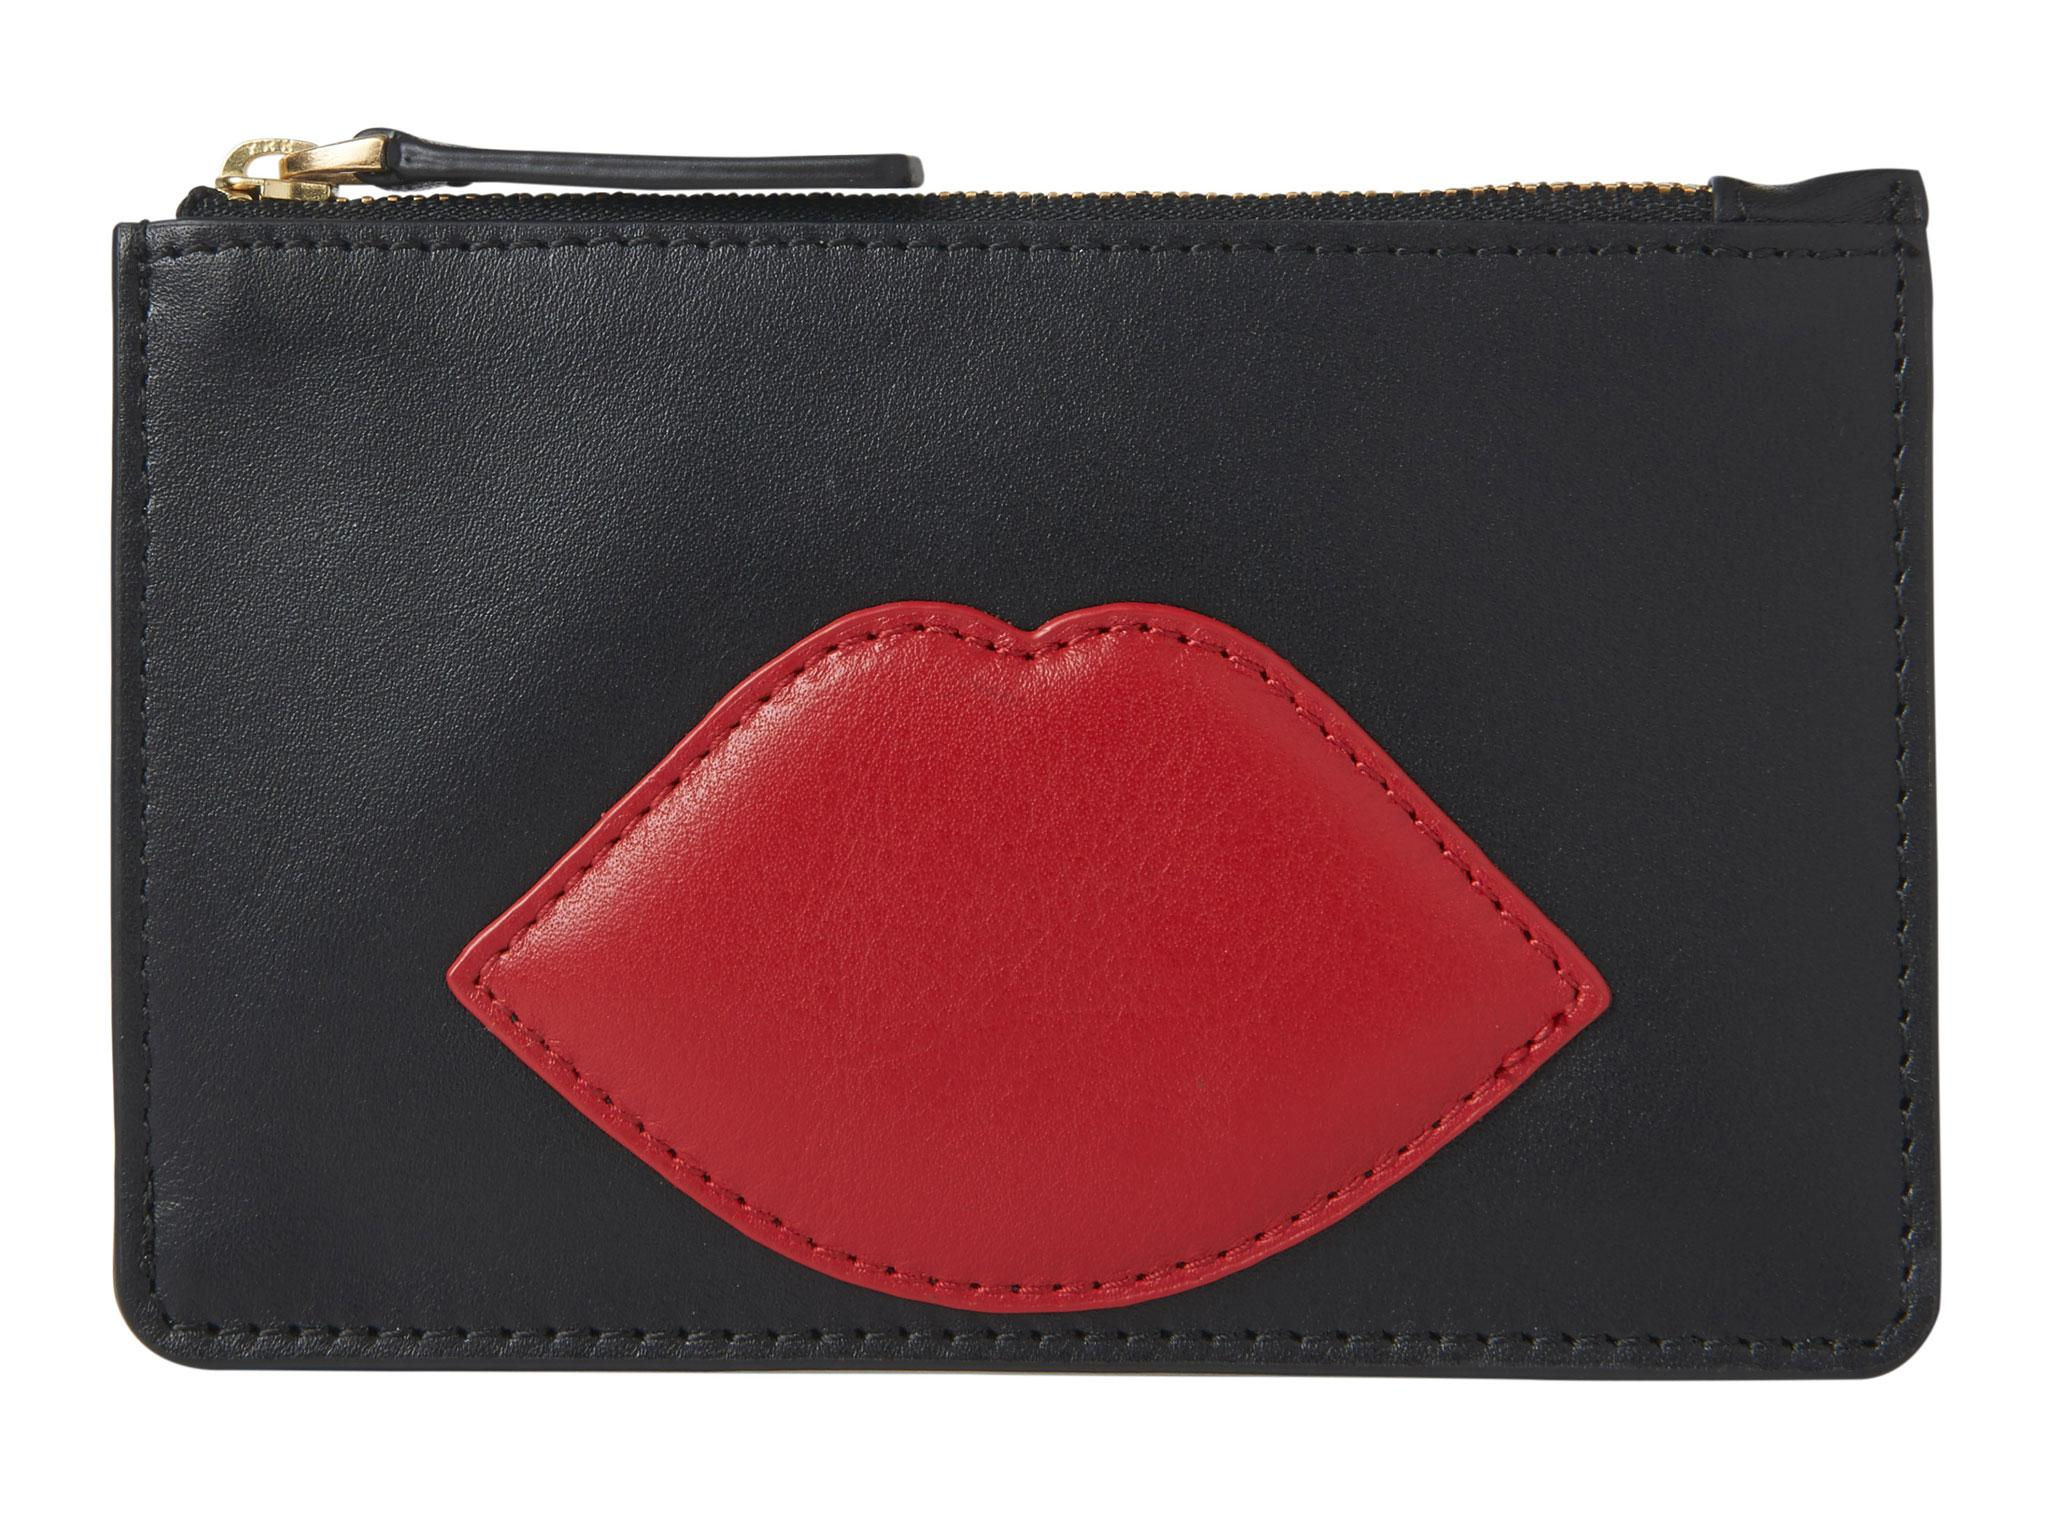 10 best women s wallets and purses   The Independent 4f0affdd48